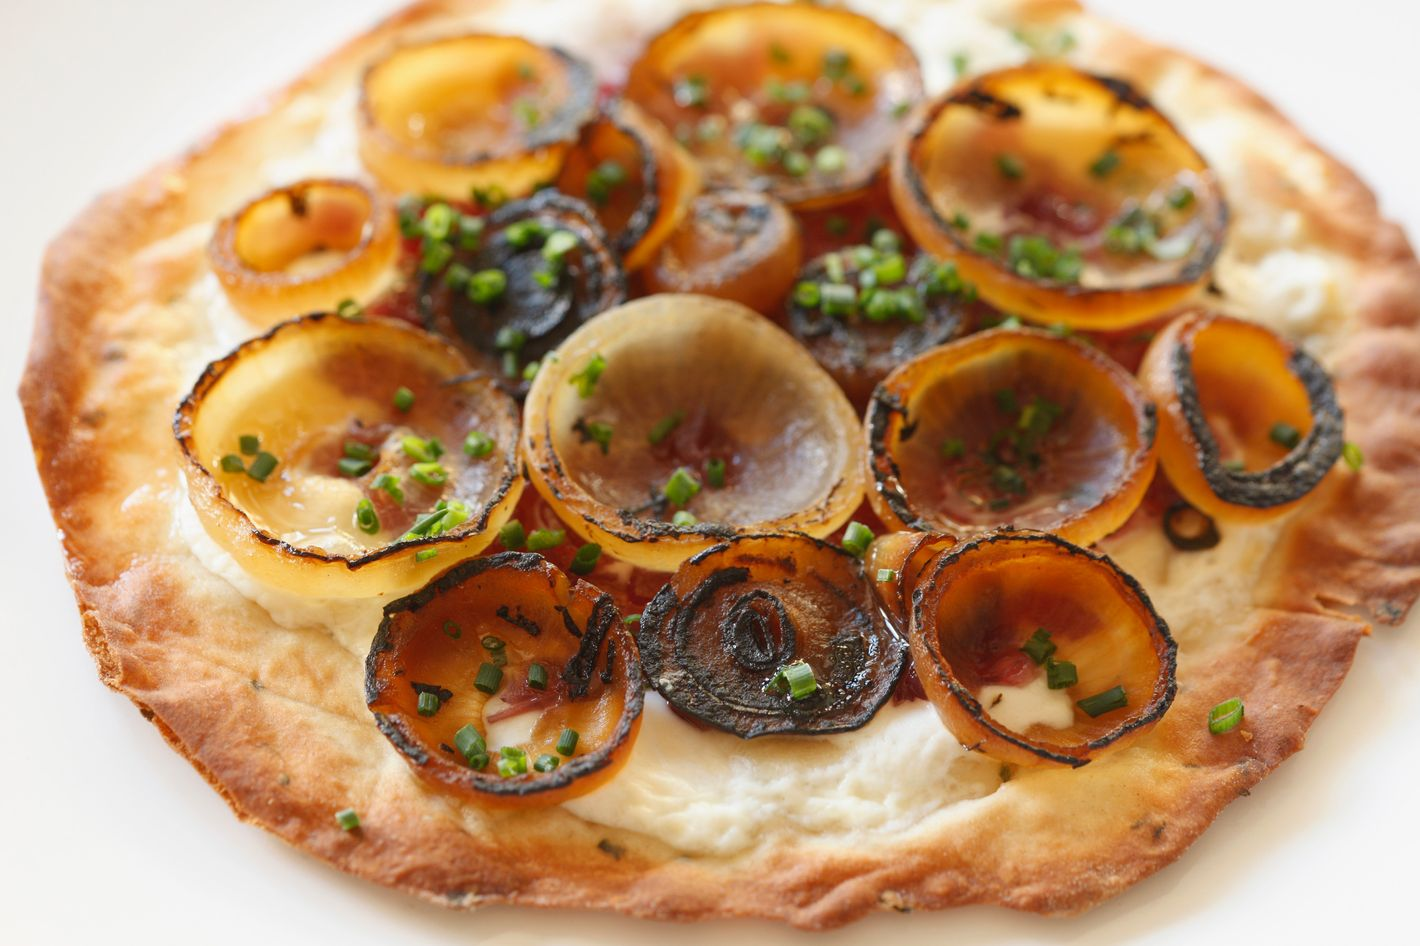 Onion tart with braised cipollini, mountain cheese, and onion gravy.